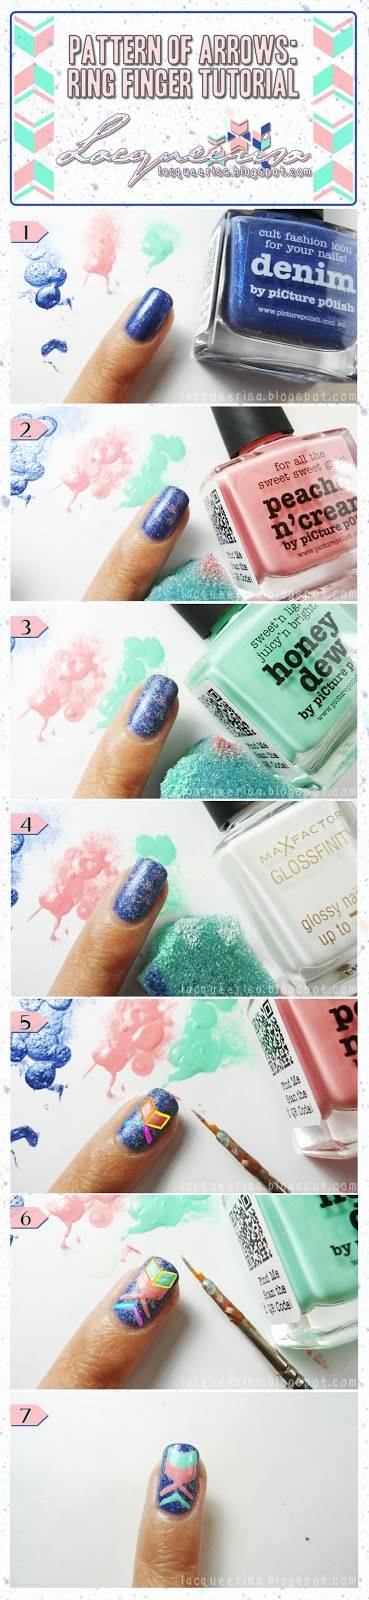 piCture pOlish Blog Fest 2013: Pattern of Arrows (Ring Finger Tutorial) by Lacqueerisa